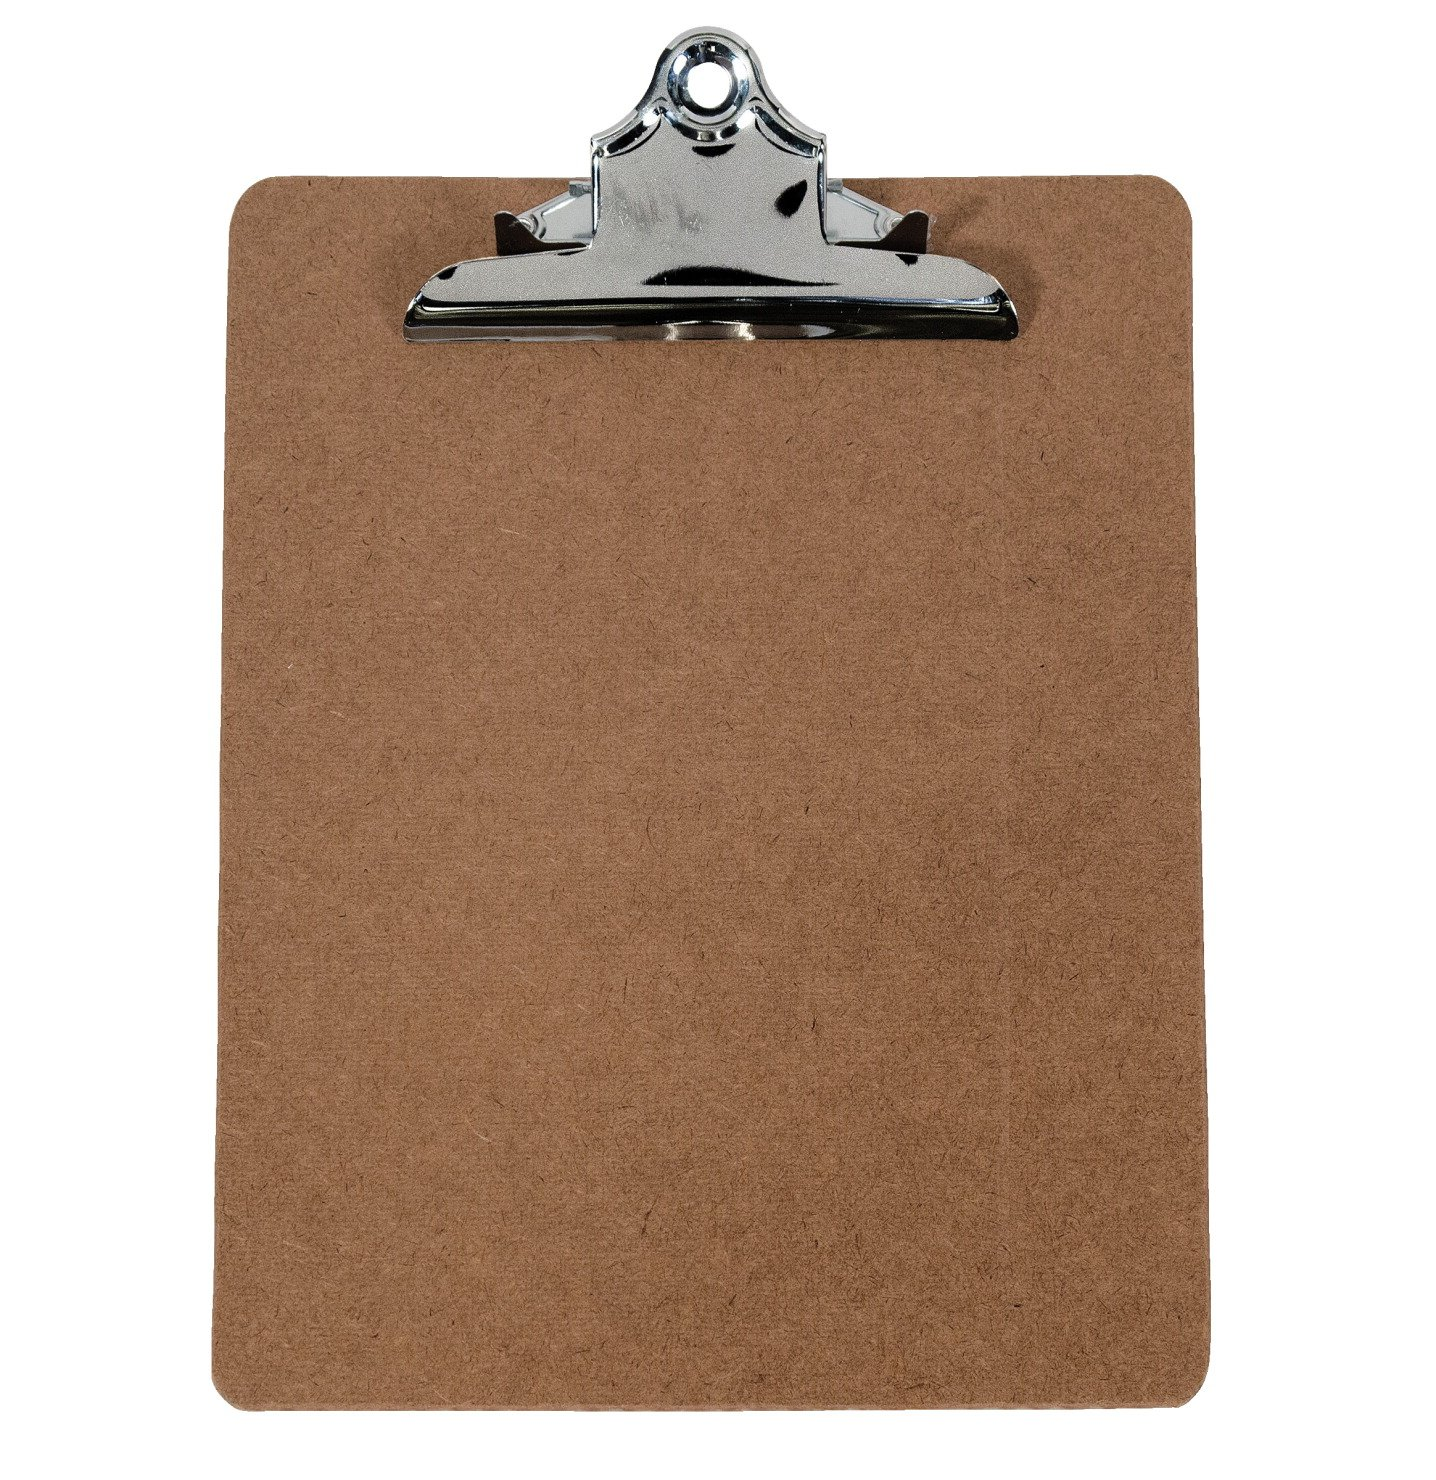 School Smart Clip Board - Legal Size - 9 x 15 1/2 inches